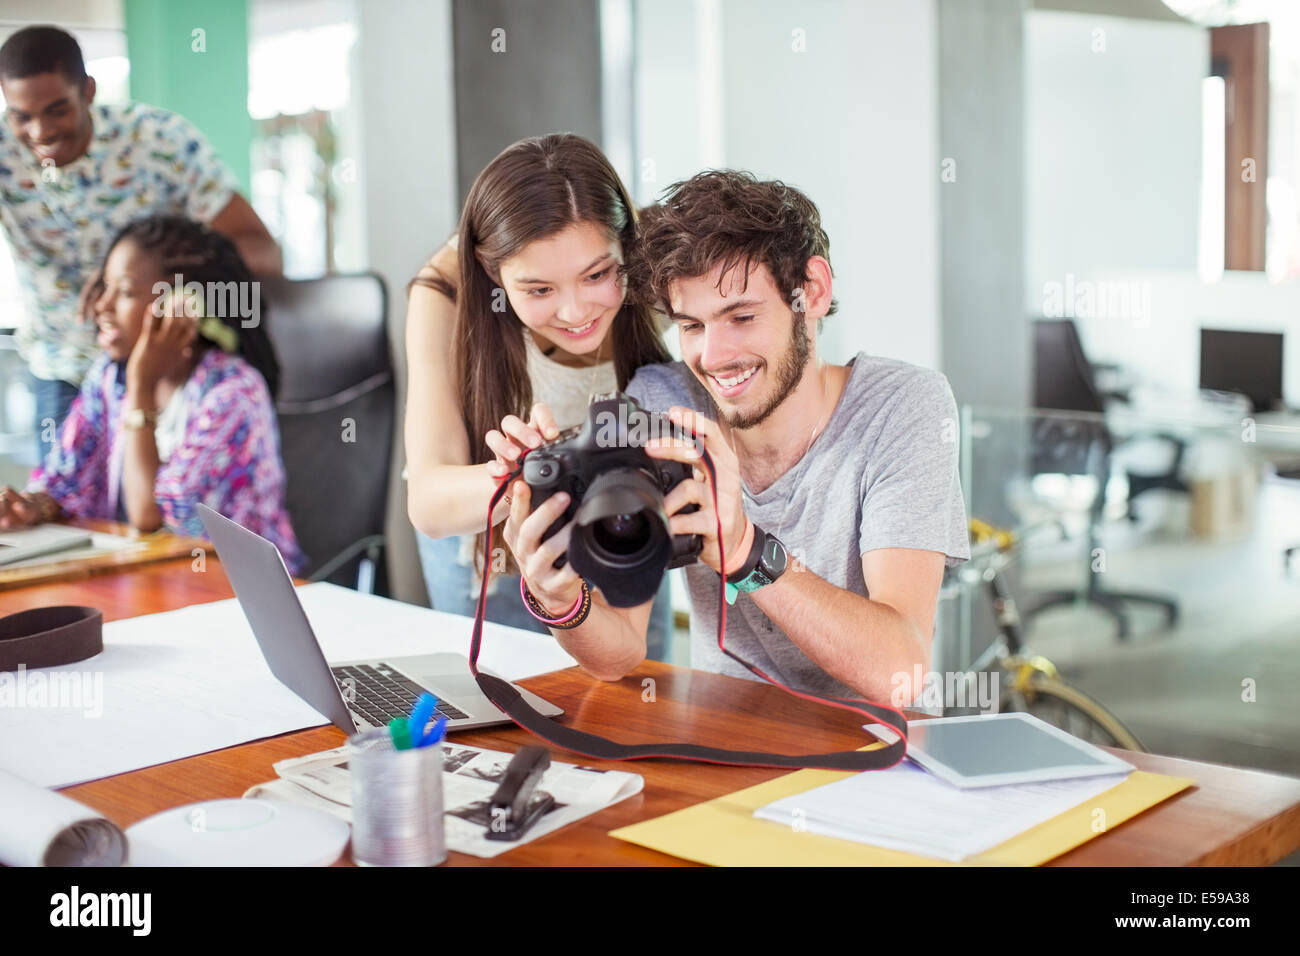 People reviewing photos together in office - Stock Image